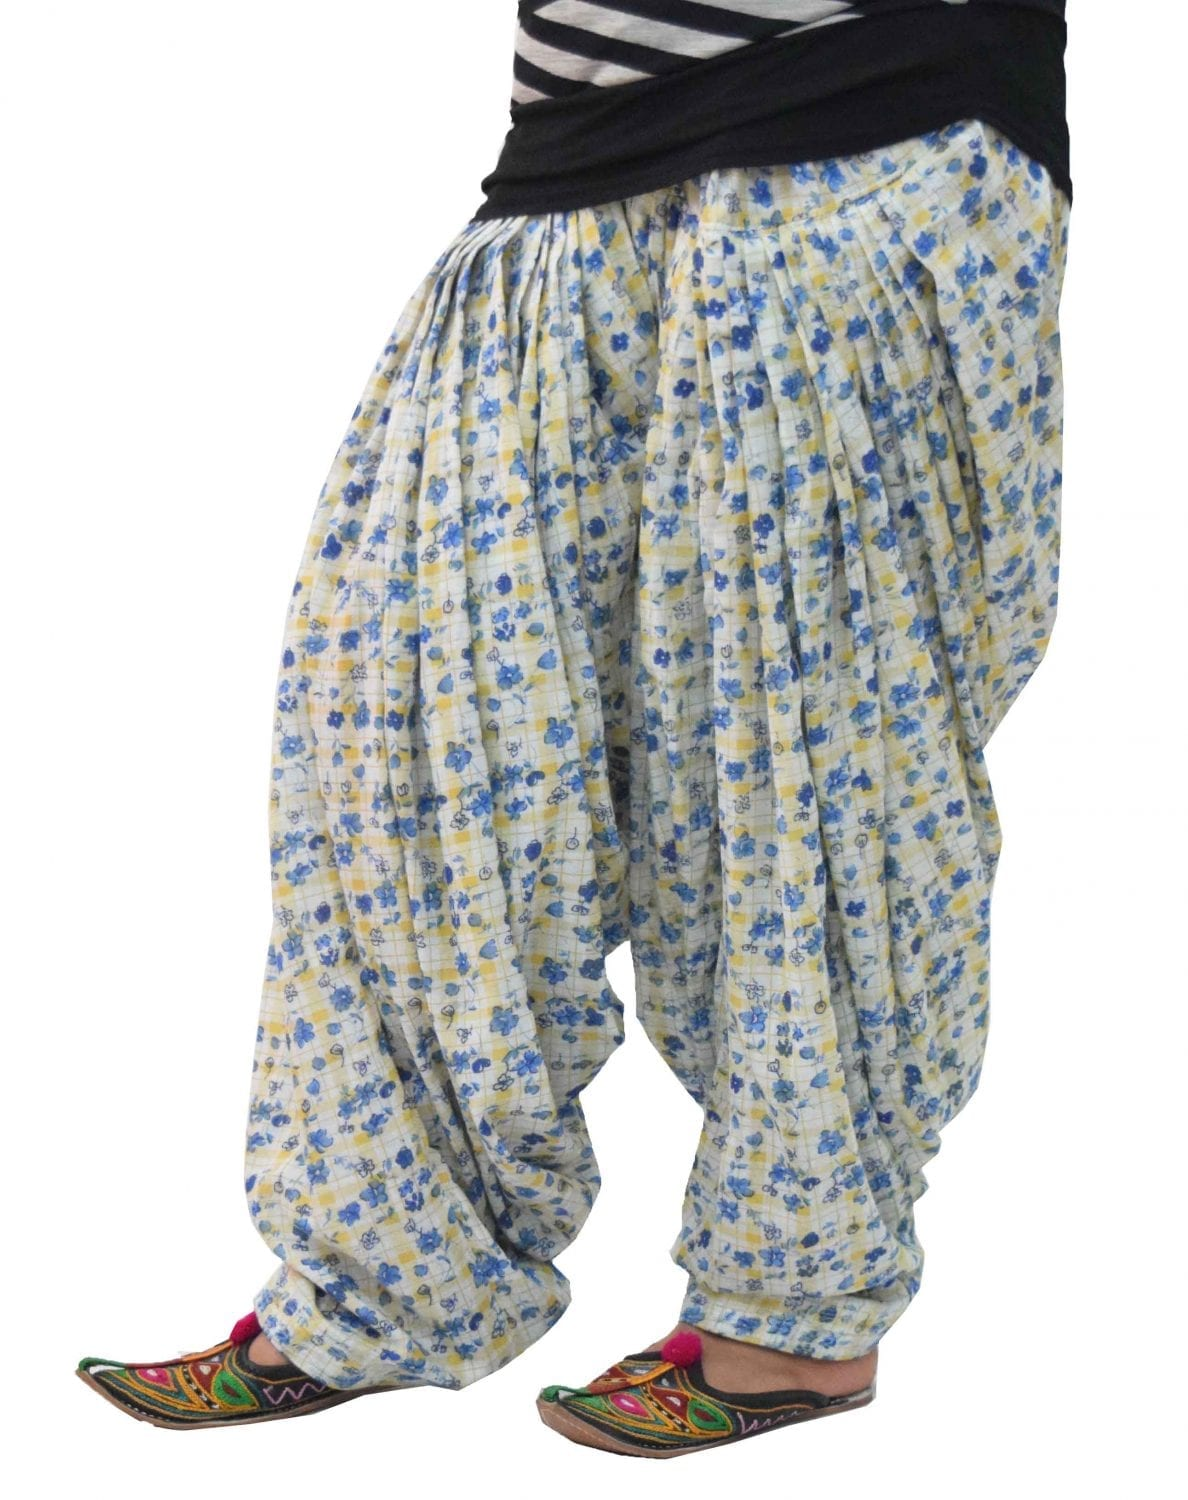 Printed Full Patiala Salwar Limited Edition 100% Pure Cotton PPS276 1